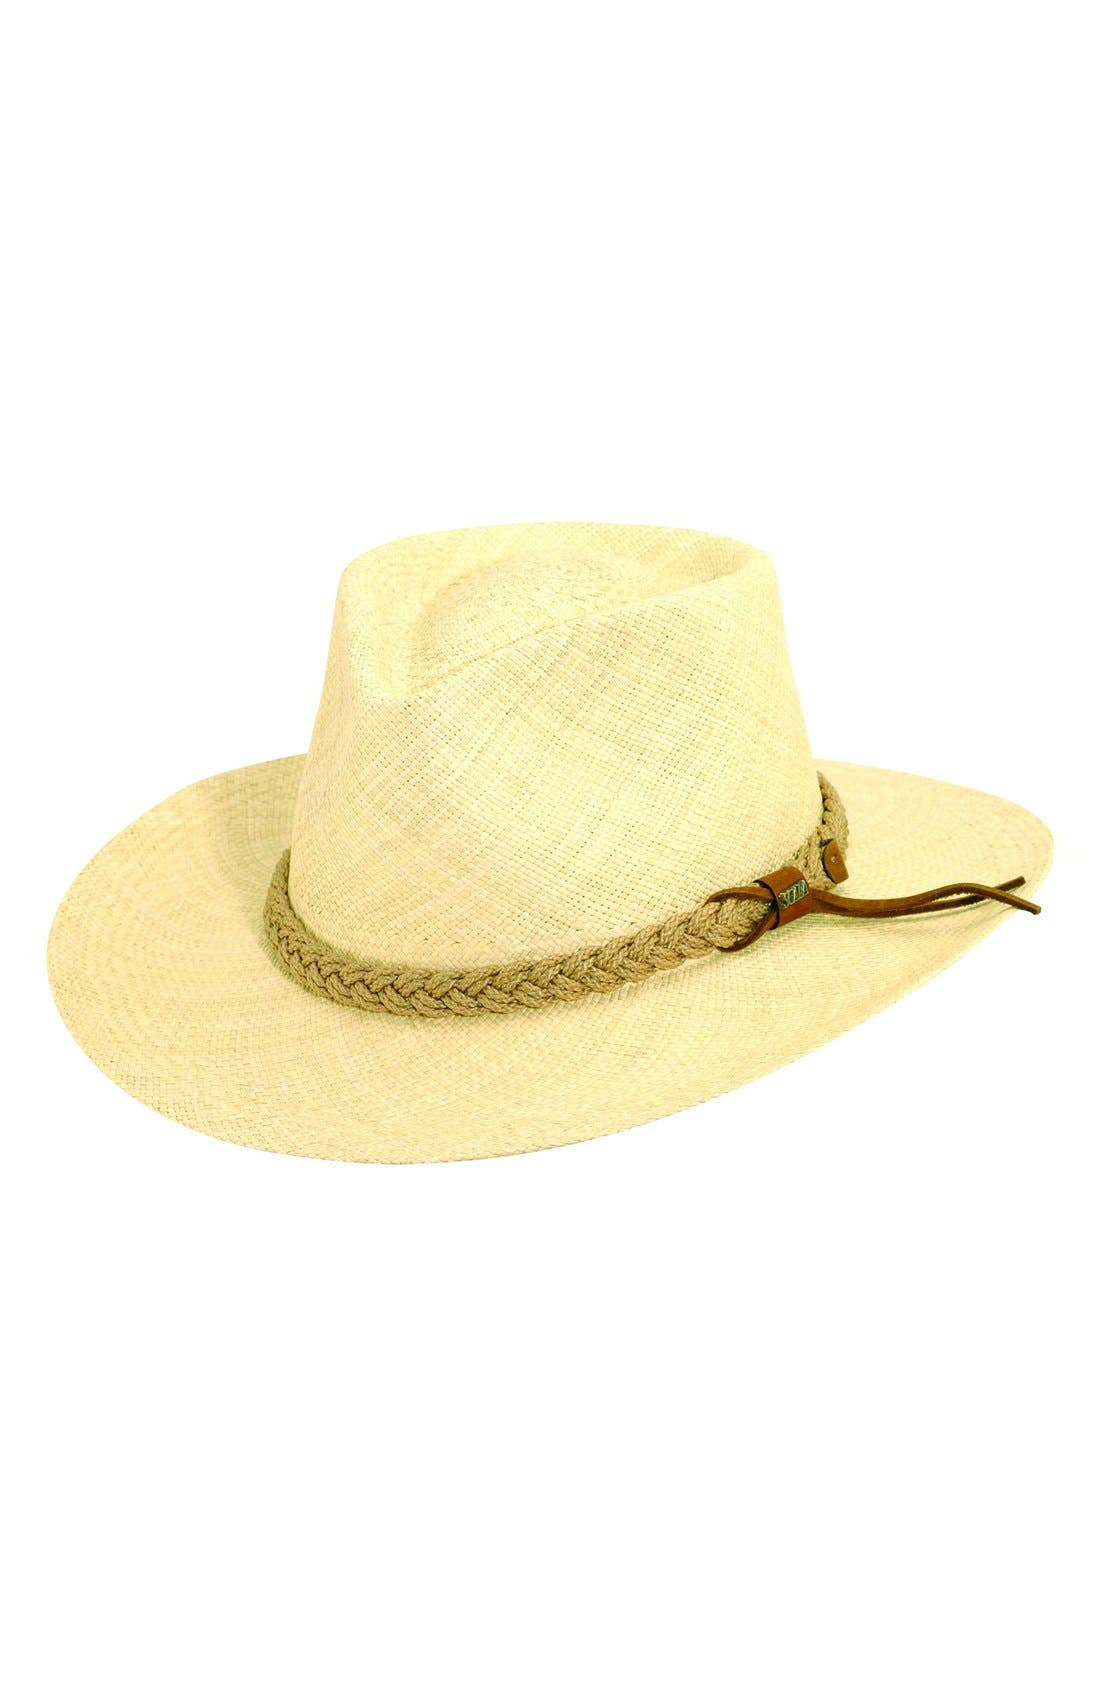 Panama Straw Outback Hat,                         Main,                         color, 109